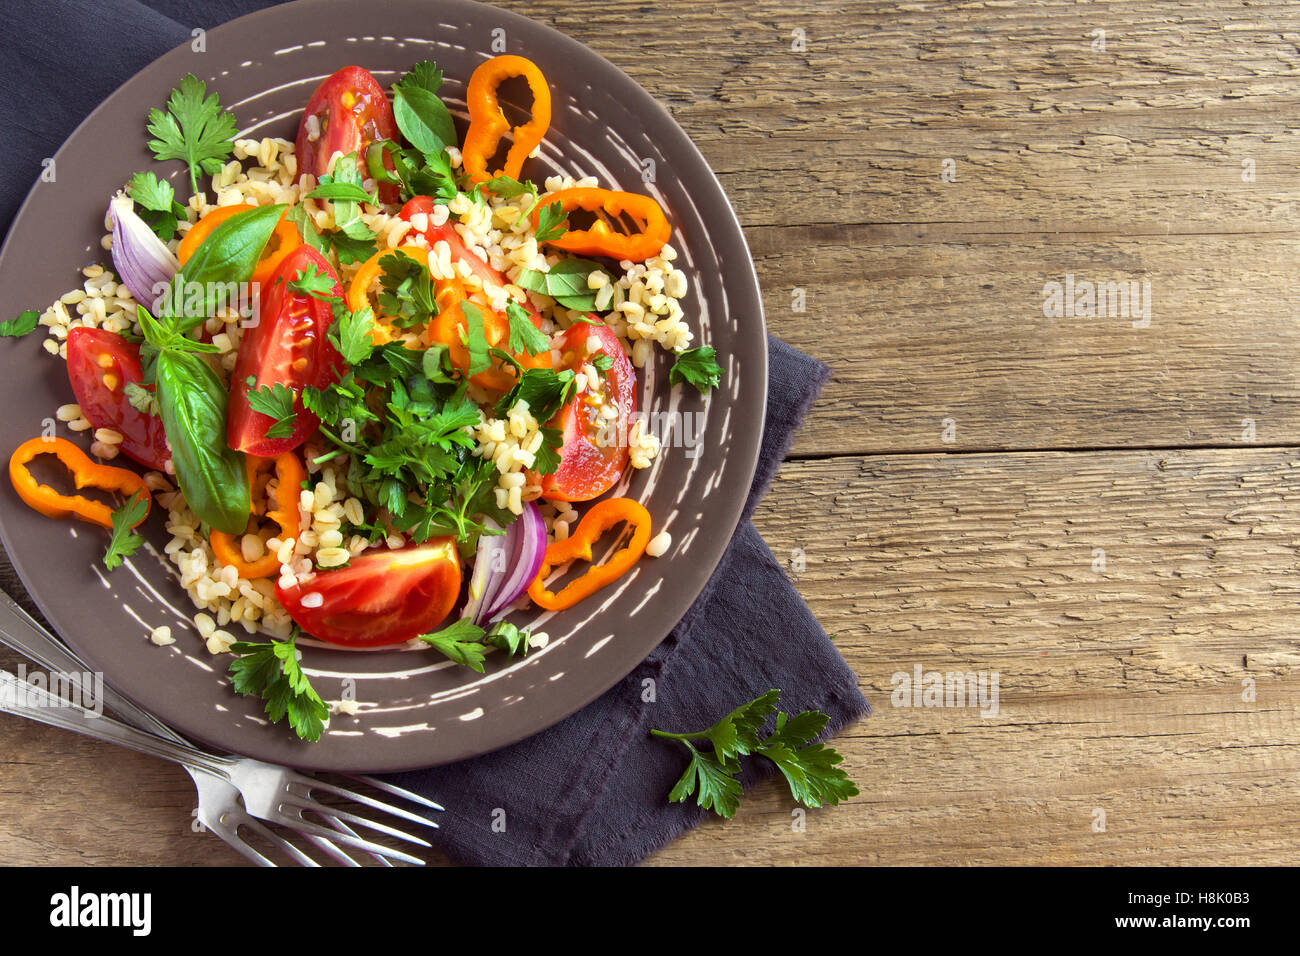 Fresh organic tomato and couscous salad with vegetables and greens - healthy vegetarian salad over rustic wooden - Stock Image